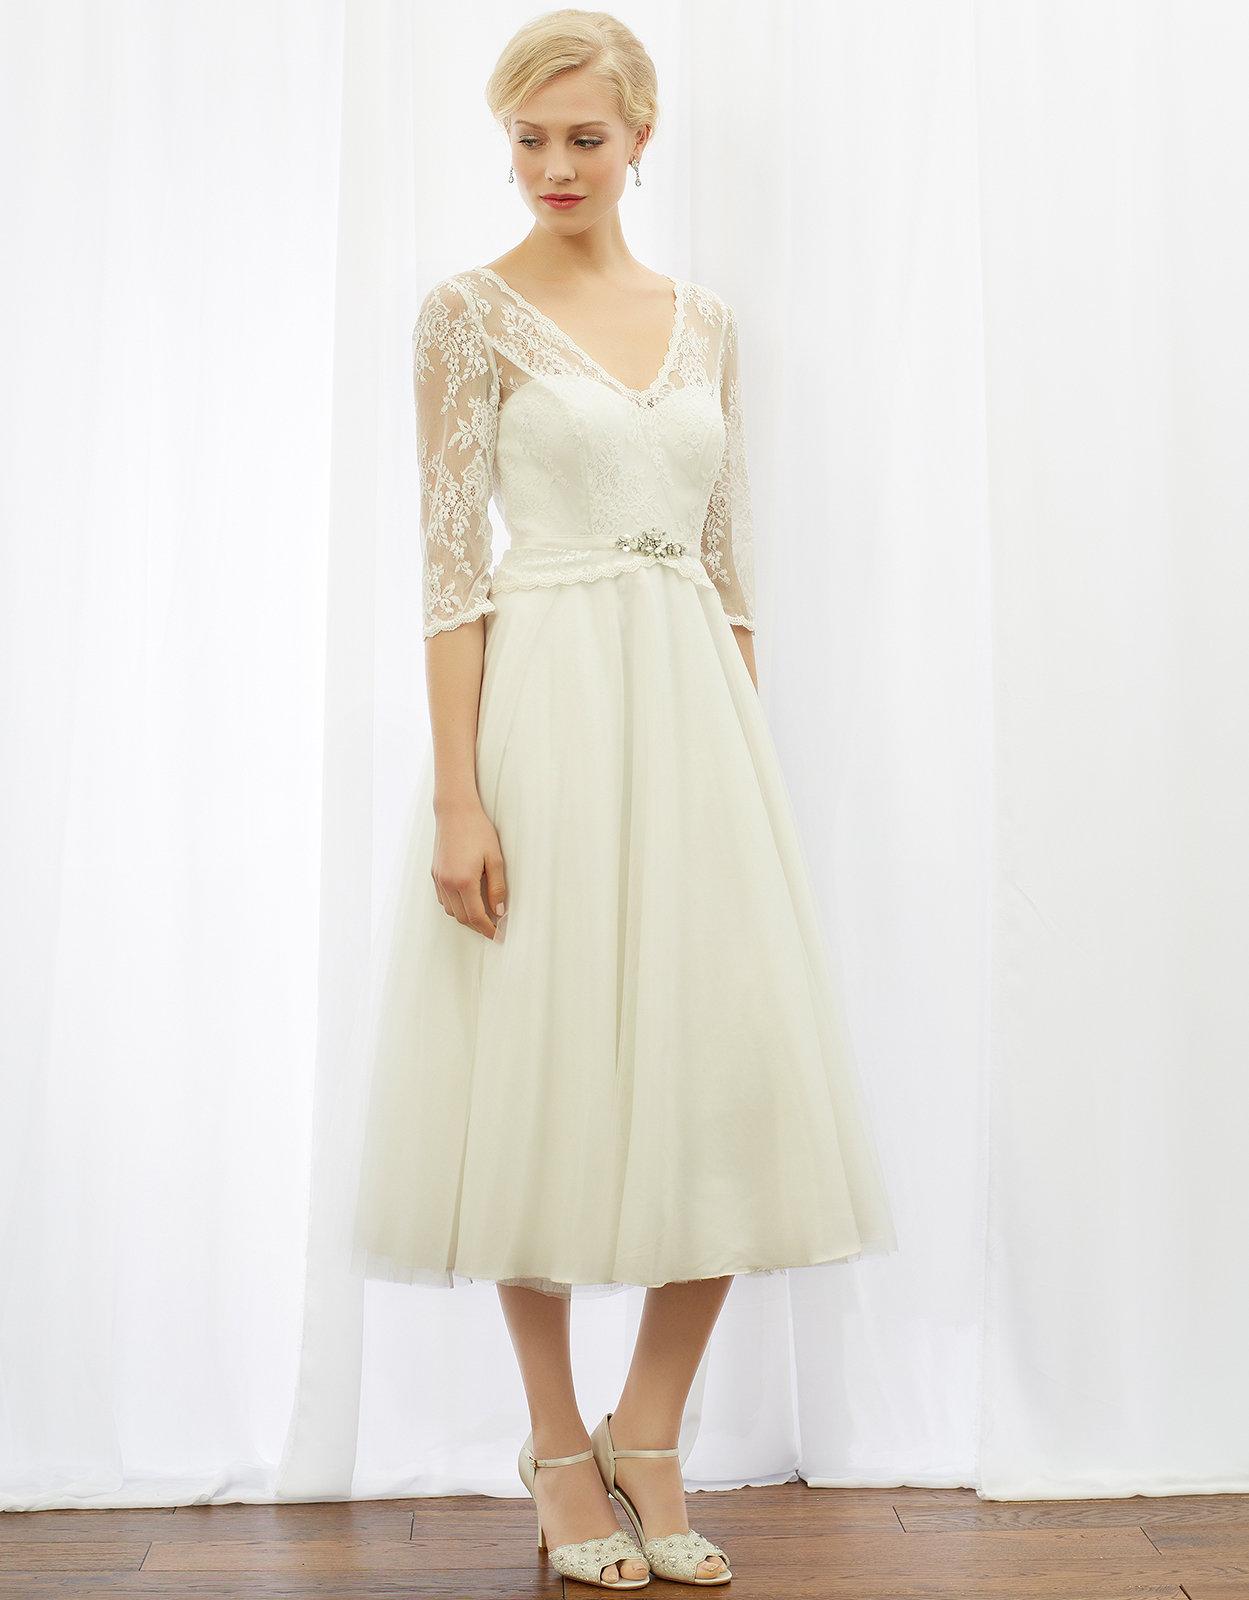 Monsoon Wedding Dresses 2016 – Inspiration from the Past ...